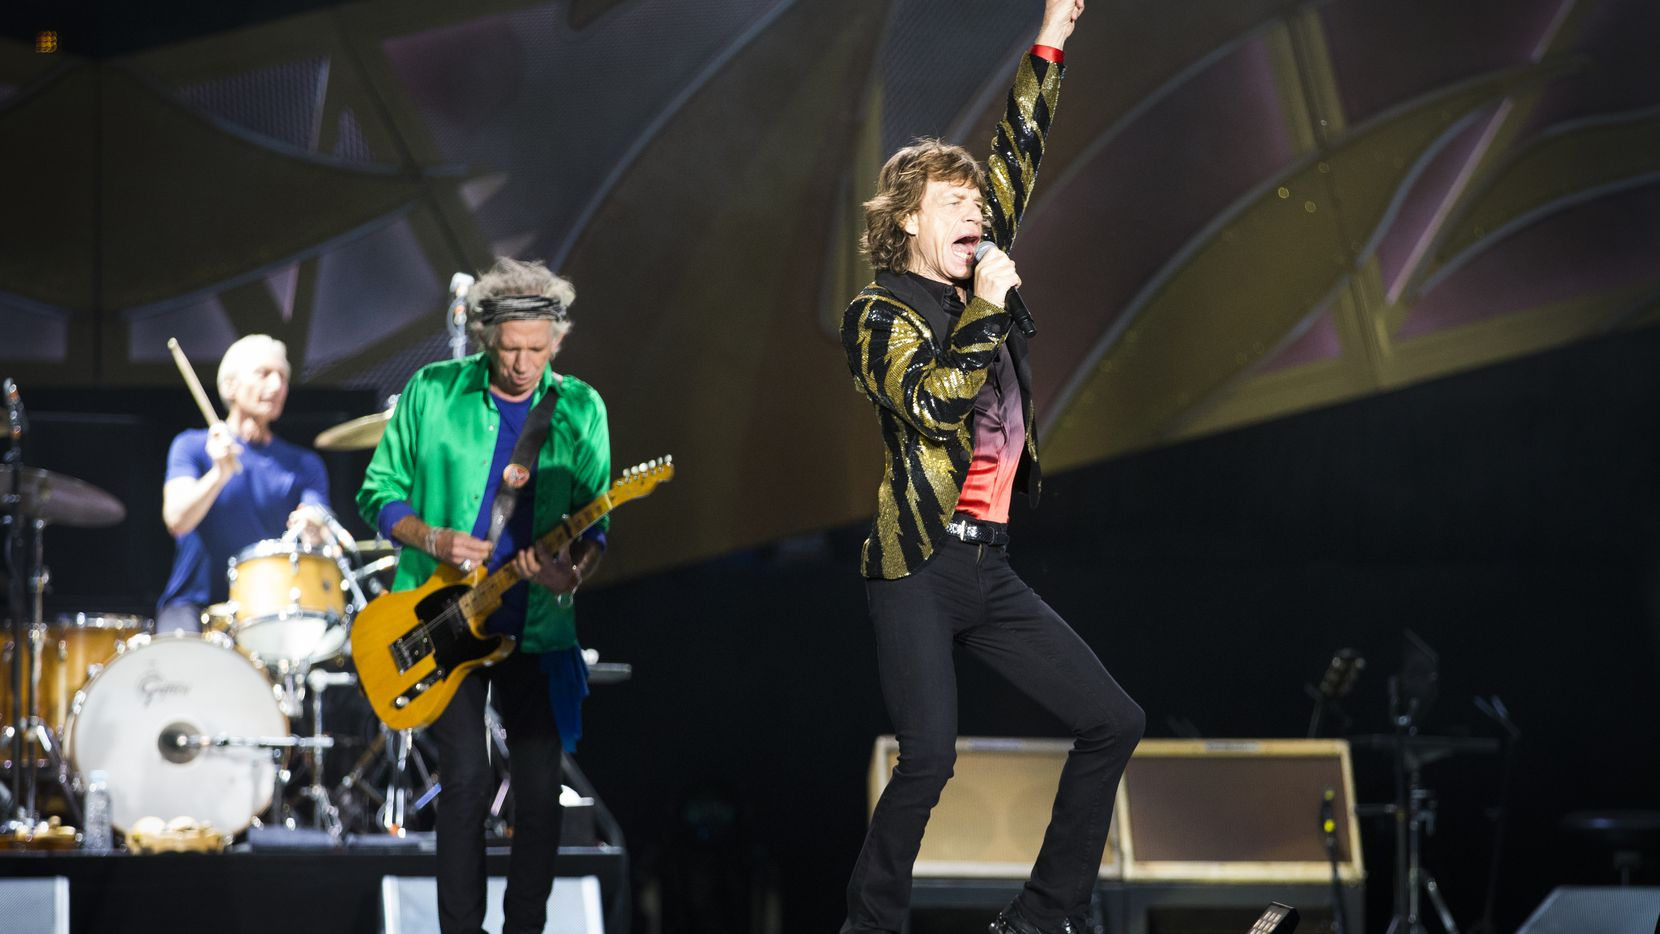 Mick Jagger of the Rolling Stones performs with drummer Charlie Watts and guitarist Keith Richards at AT&T Stadium as part of their Zip Code Tour of North America on Saturday, June 6, 2015, in Arlington, Texas.